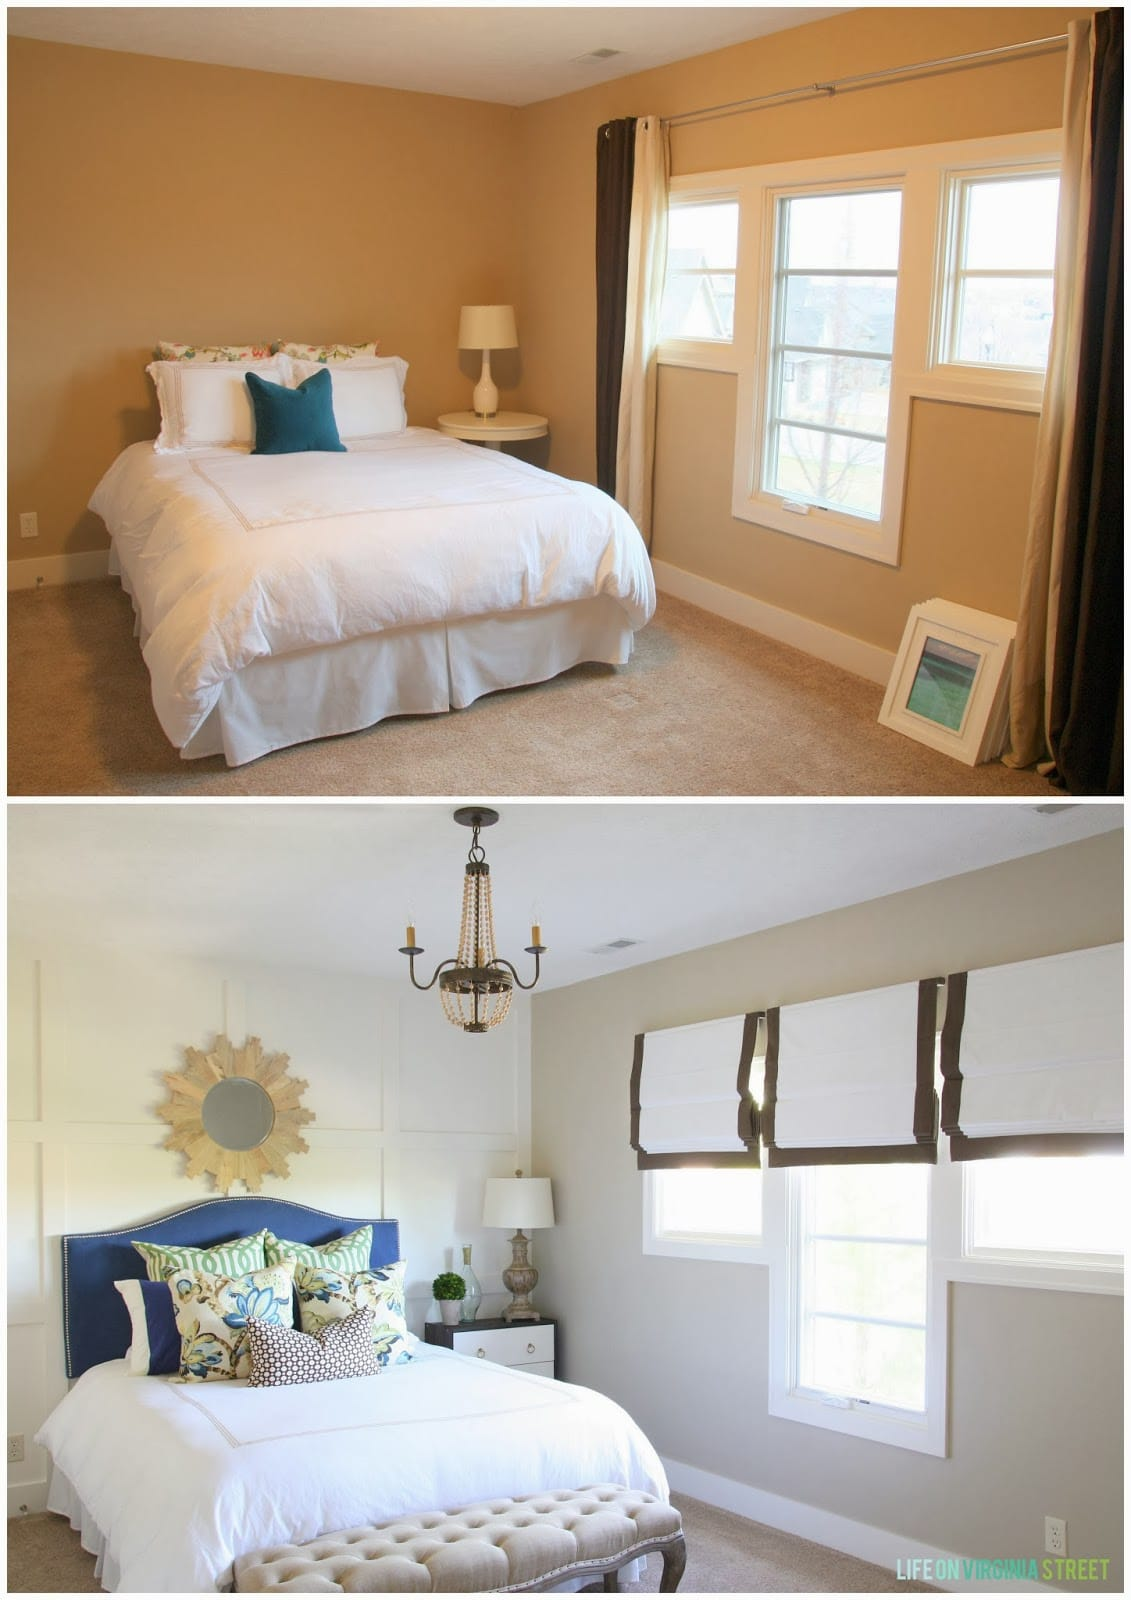 Bedroom Makeover Before And After guest bedroom refresh - life on virginia street